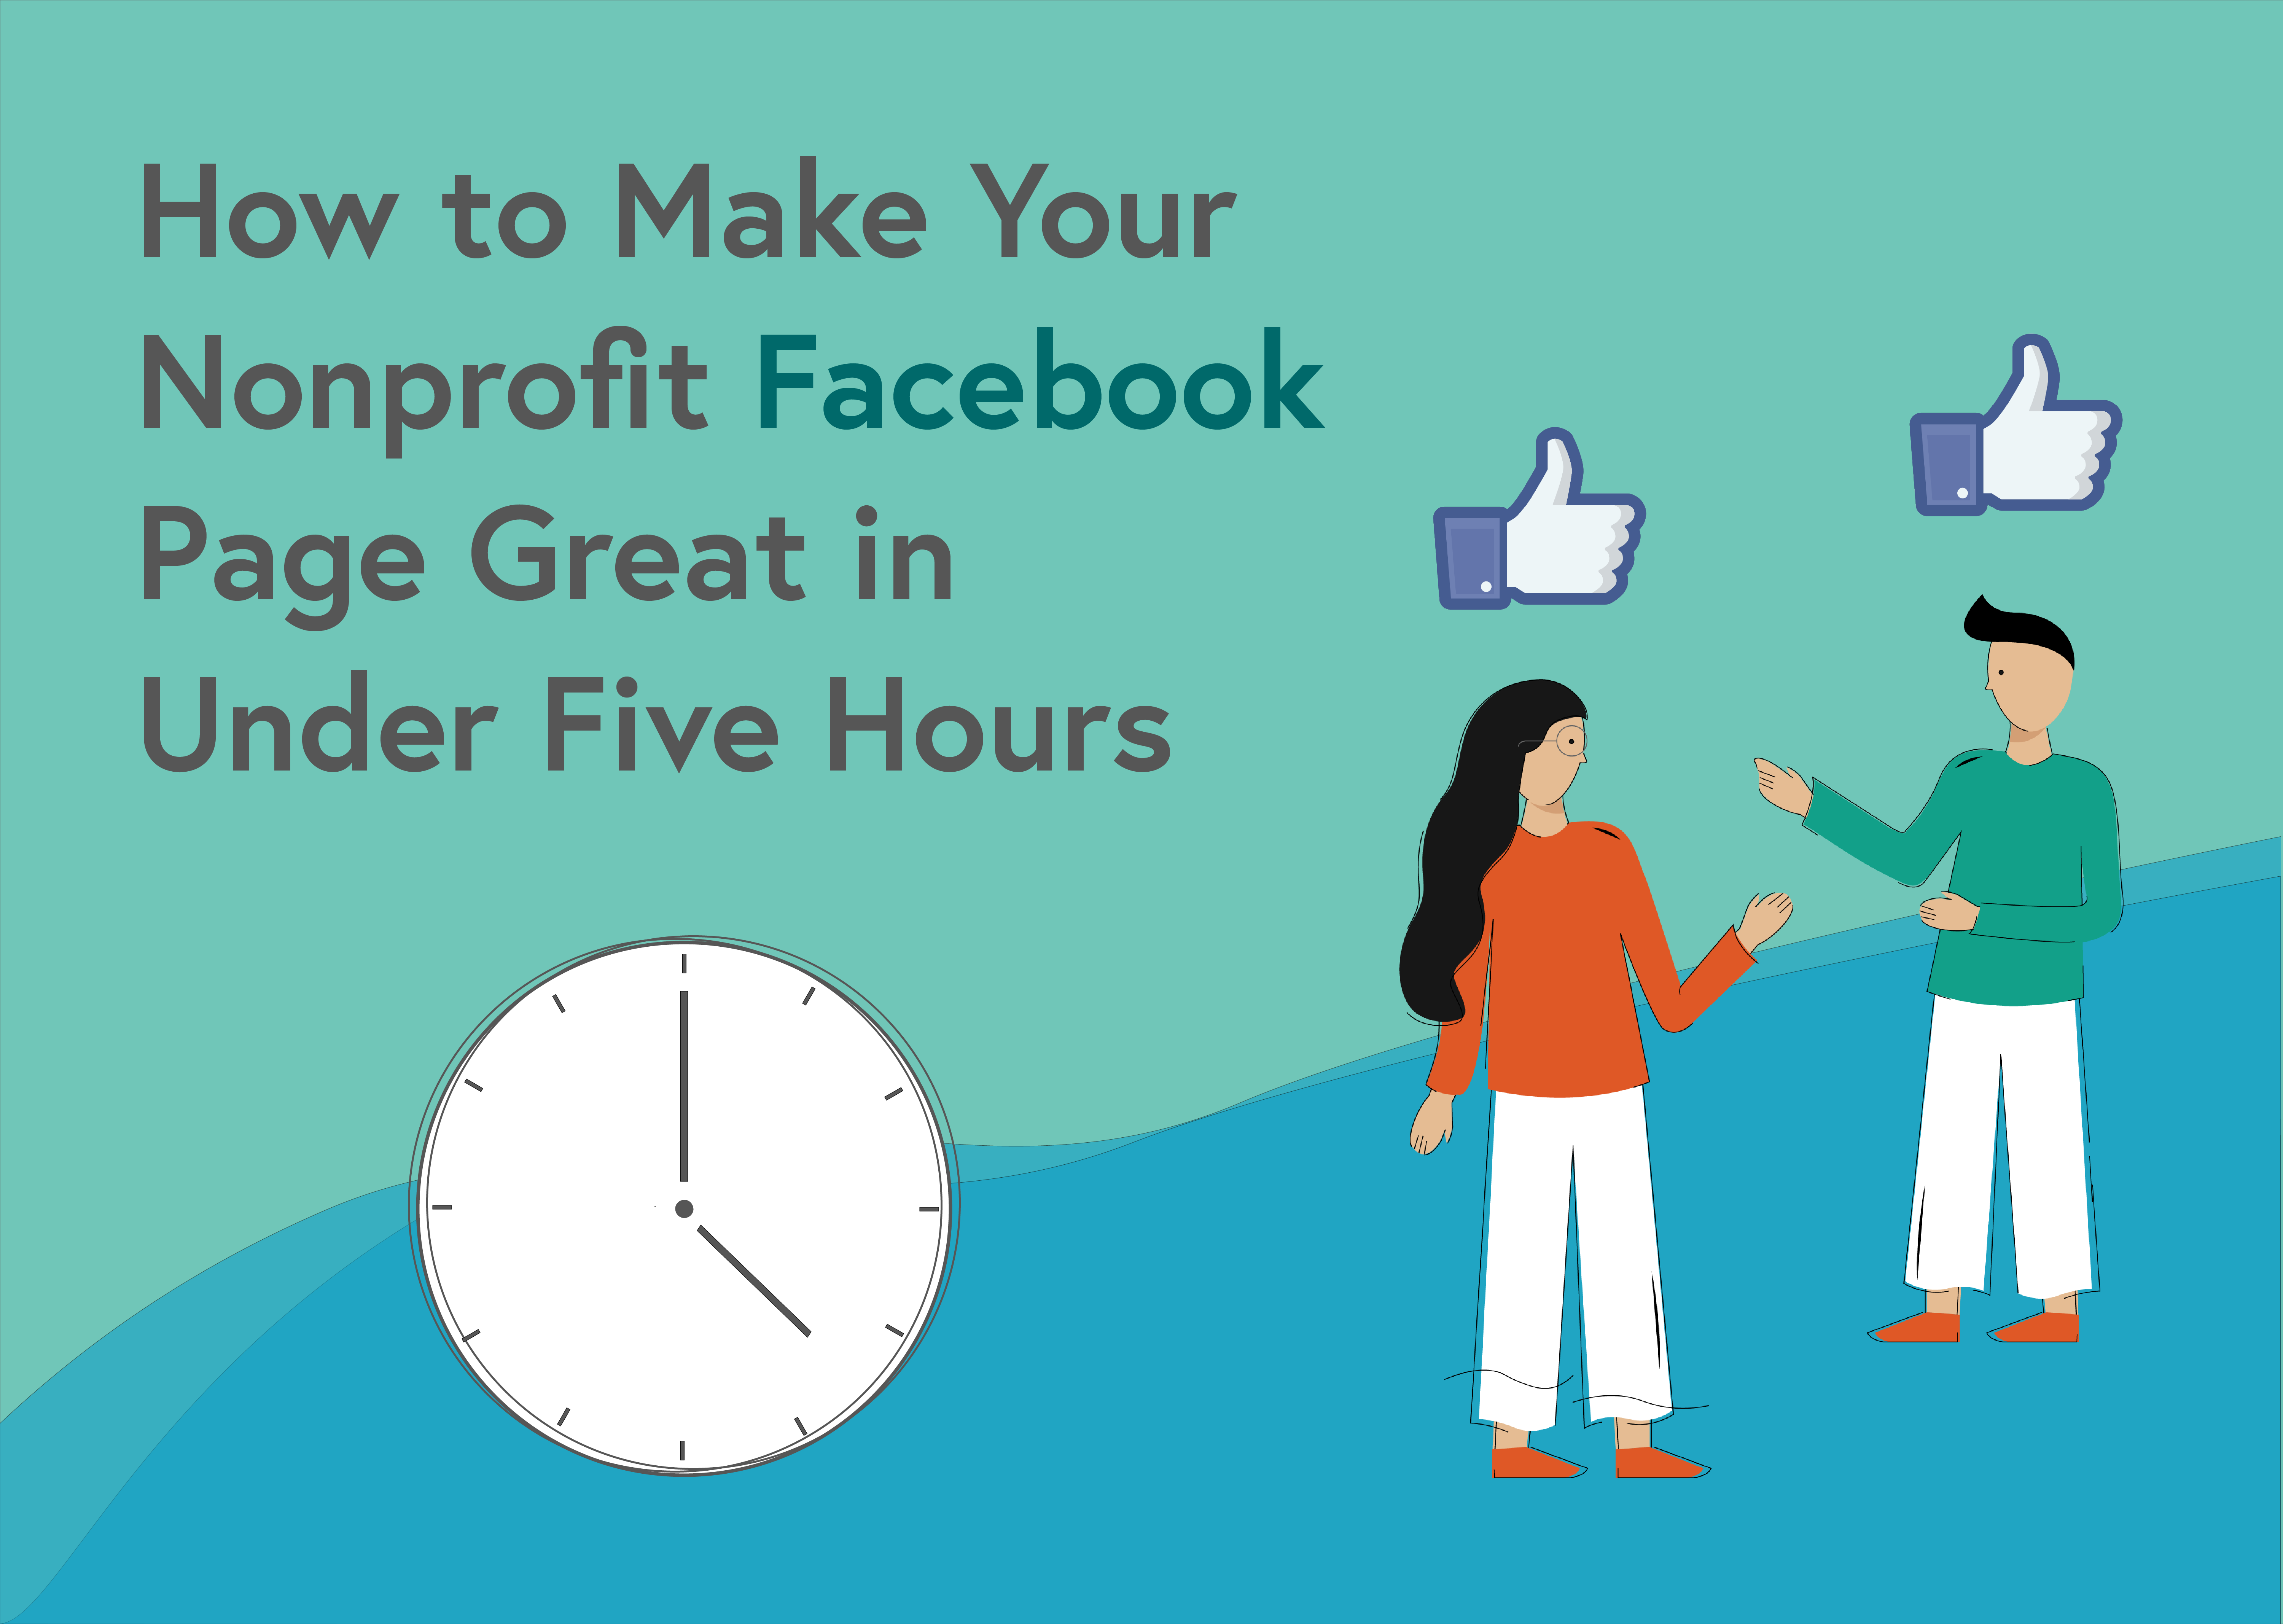 How To Make Your Nonprofit Facebook Page Great In Under Five Hours Wild Apricot Blog